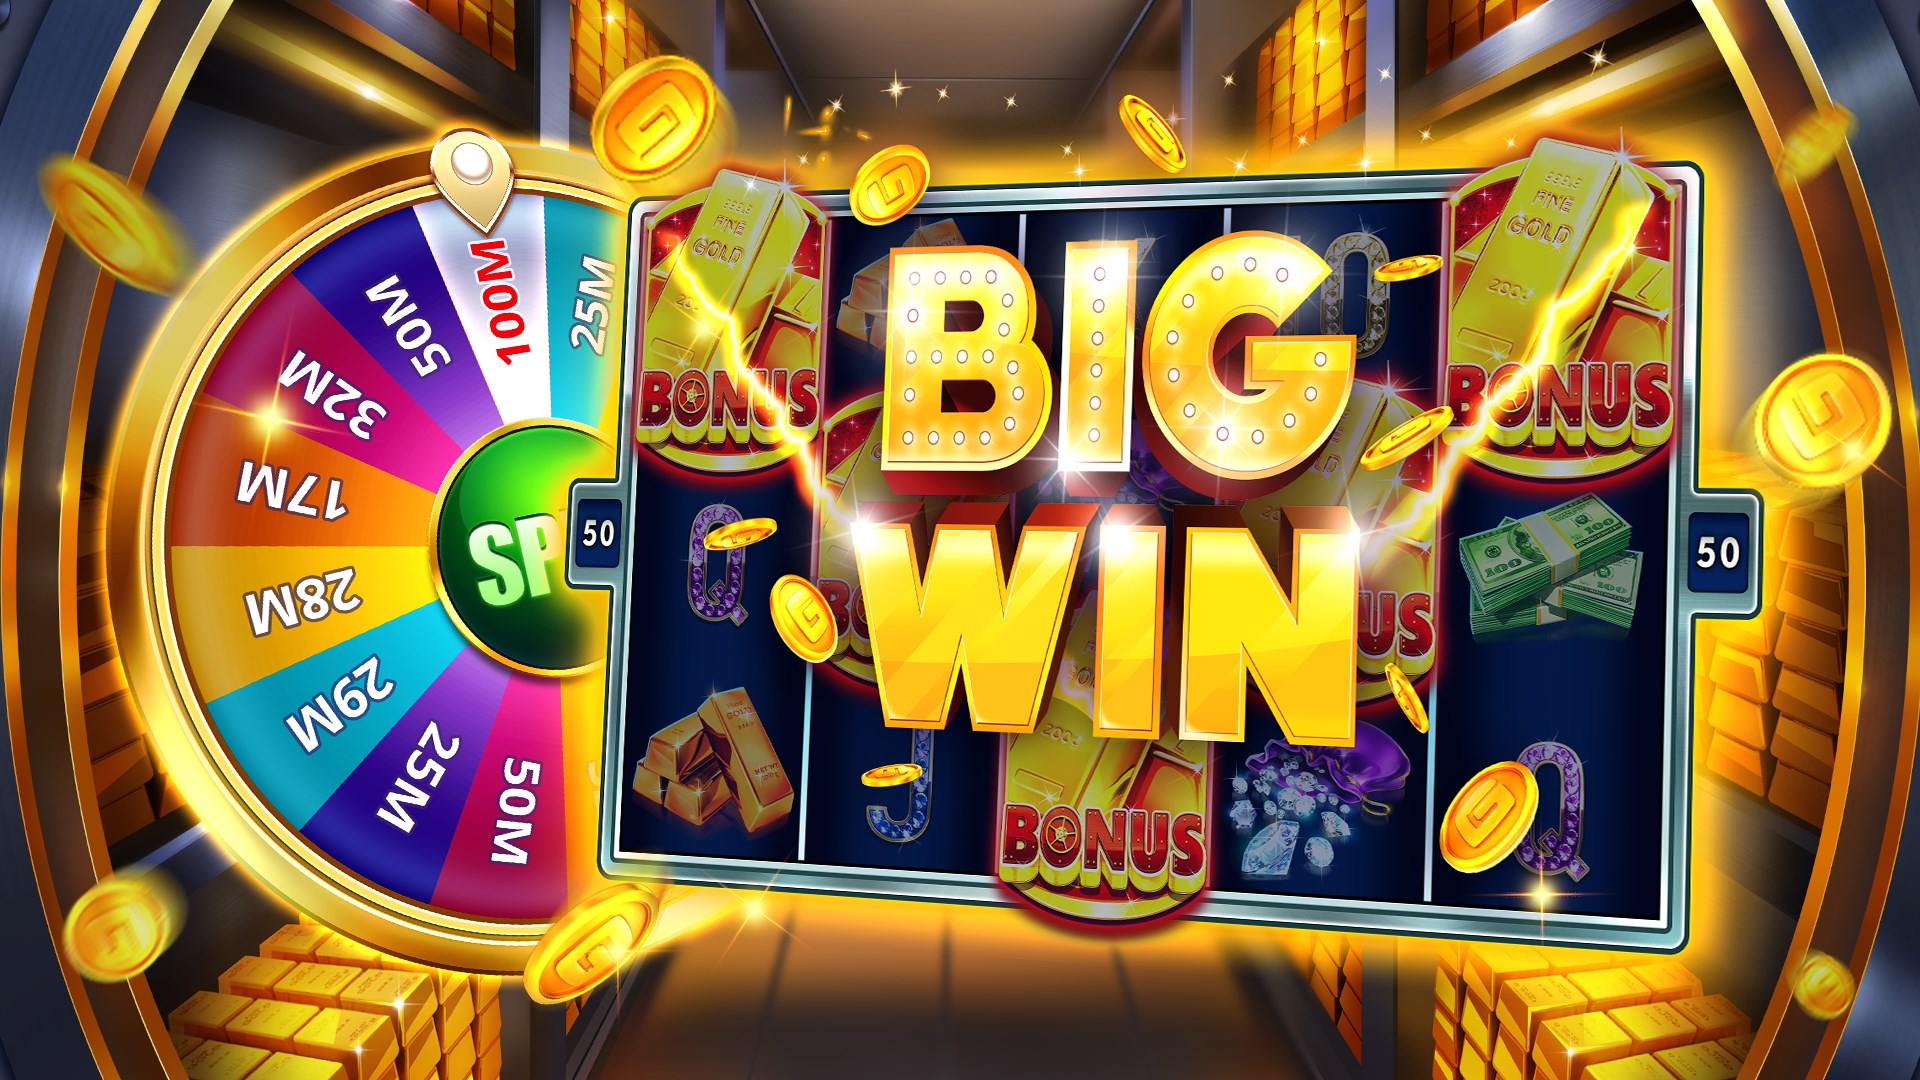 NJ Online Gambling - The Ultimate Guide To Legal NJ Online Casinos